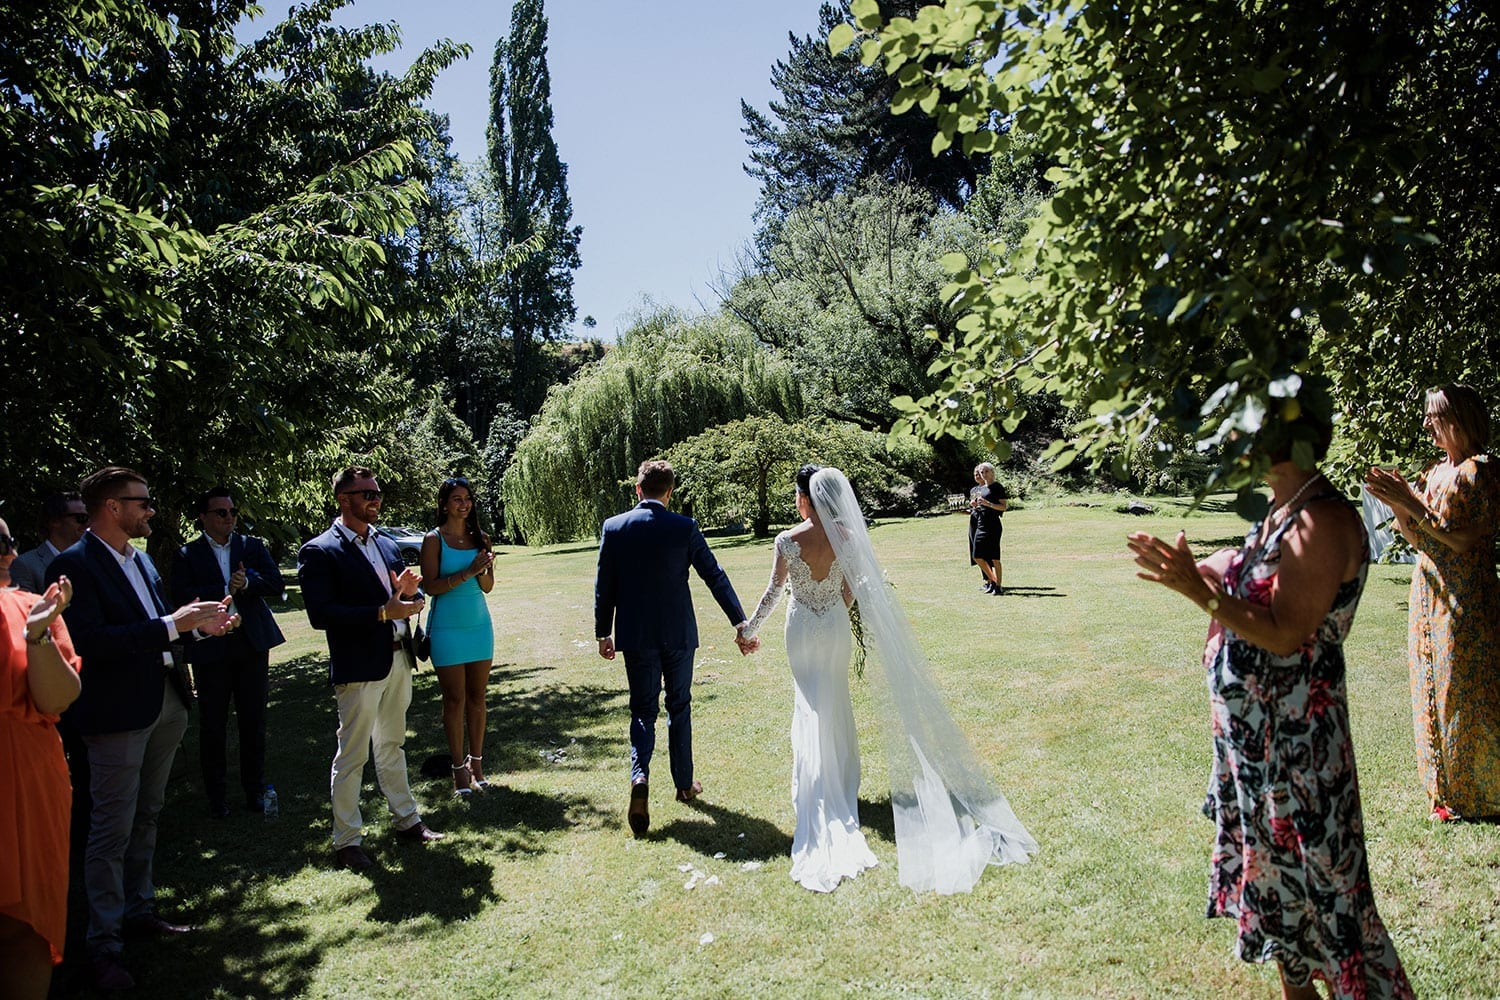 Vinka Design Features Real Weddings - bride in bespoke custom made gown with veil and train following behind with groom leaving ceremony